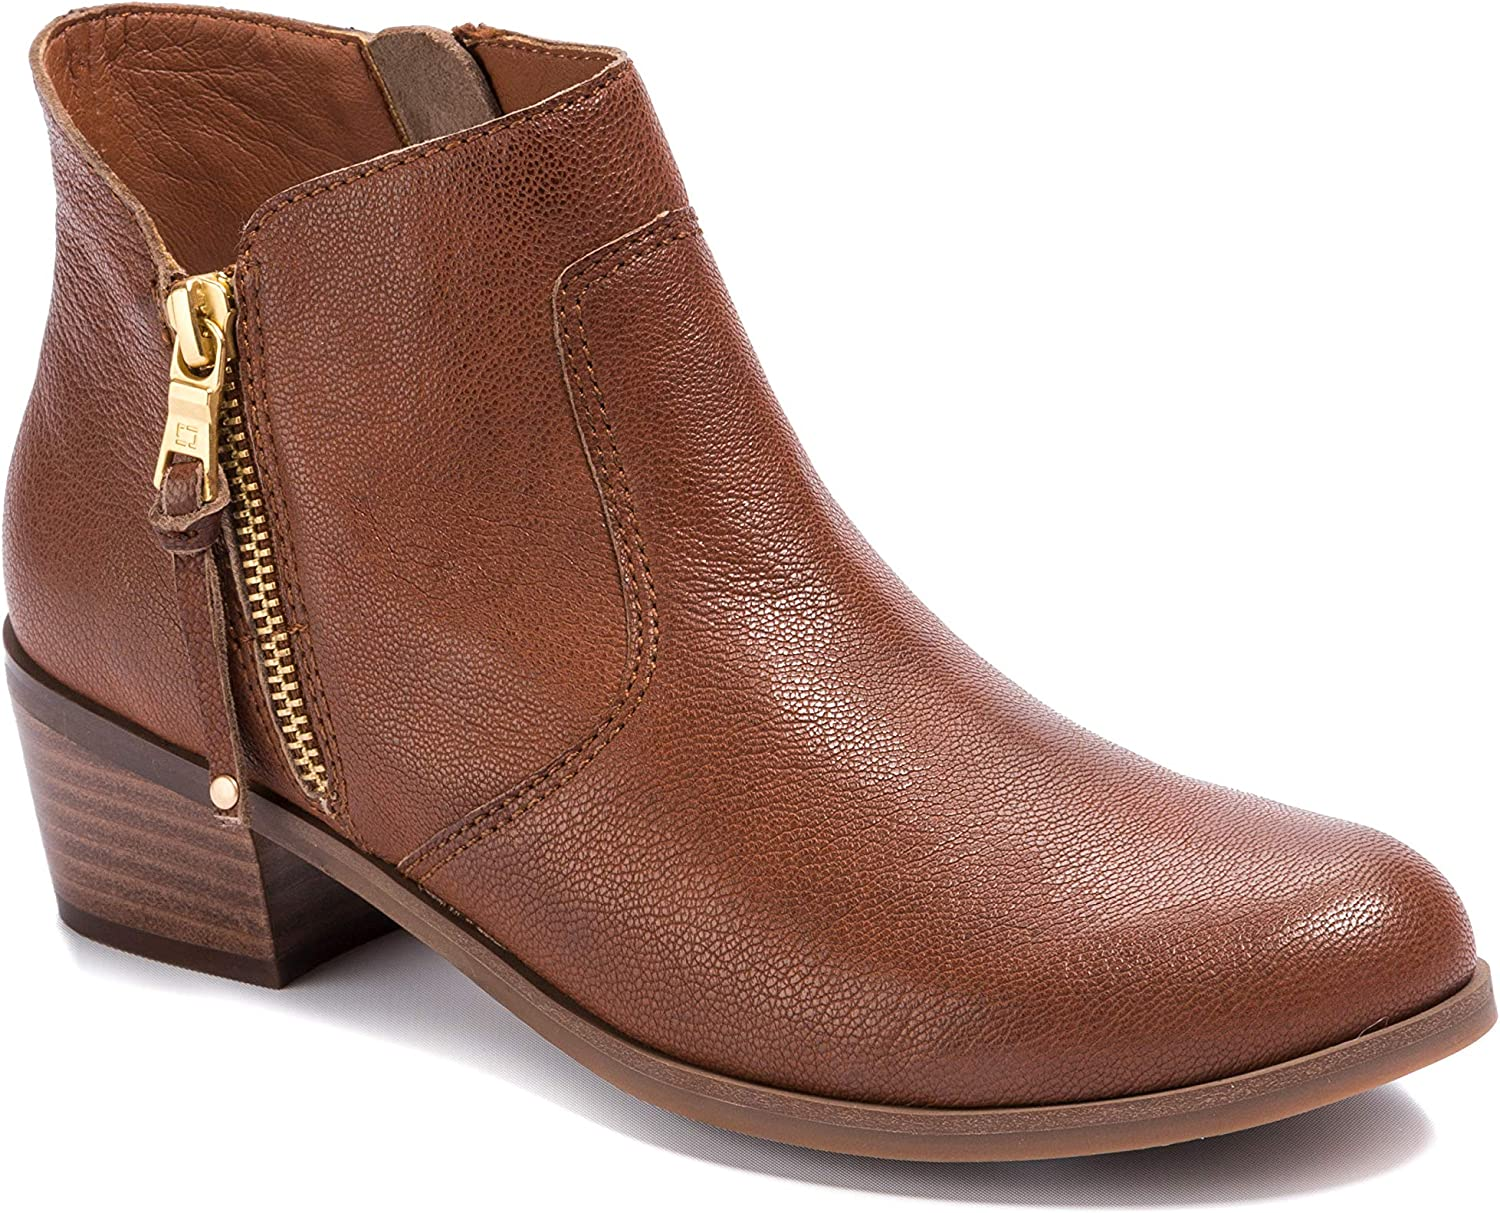 Sole Bound by Baretraps Uriel Women's Boots